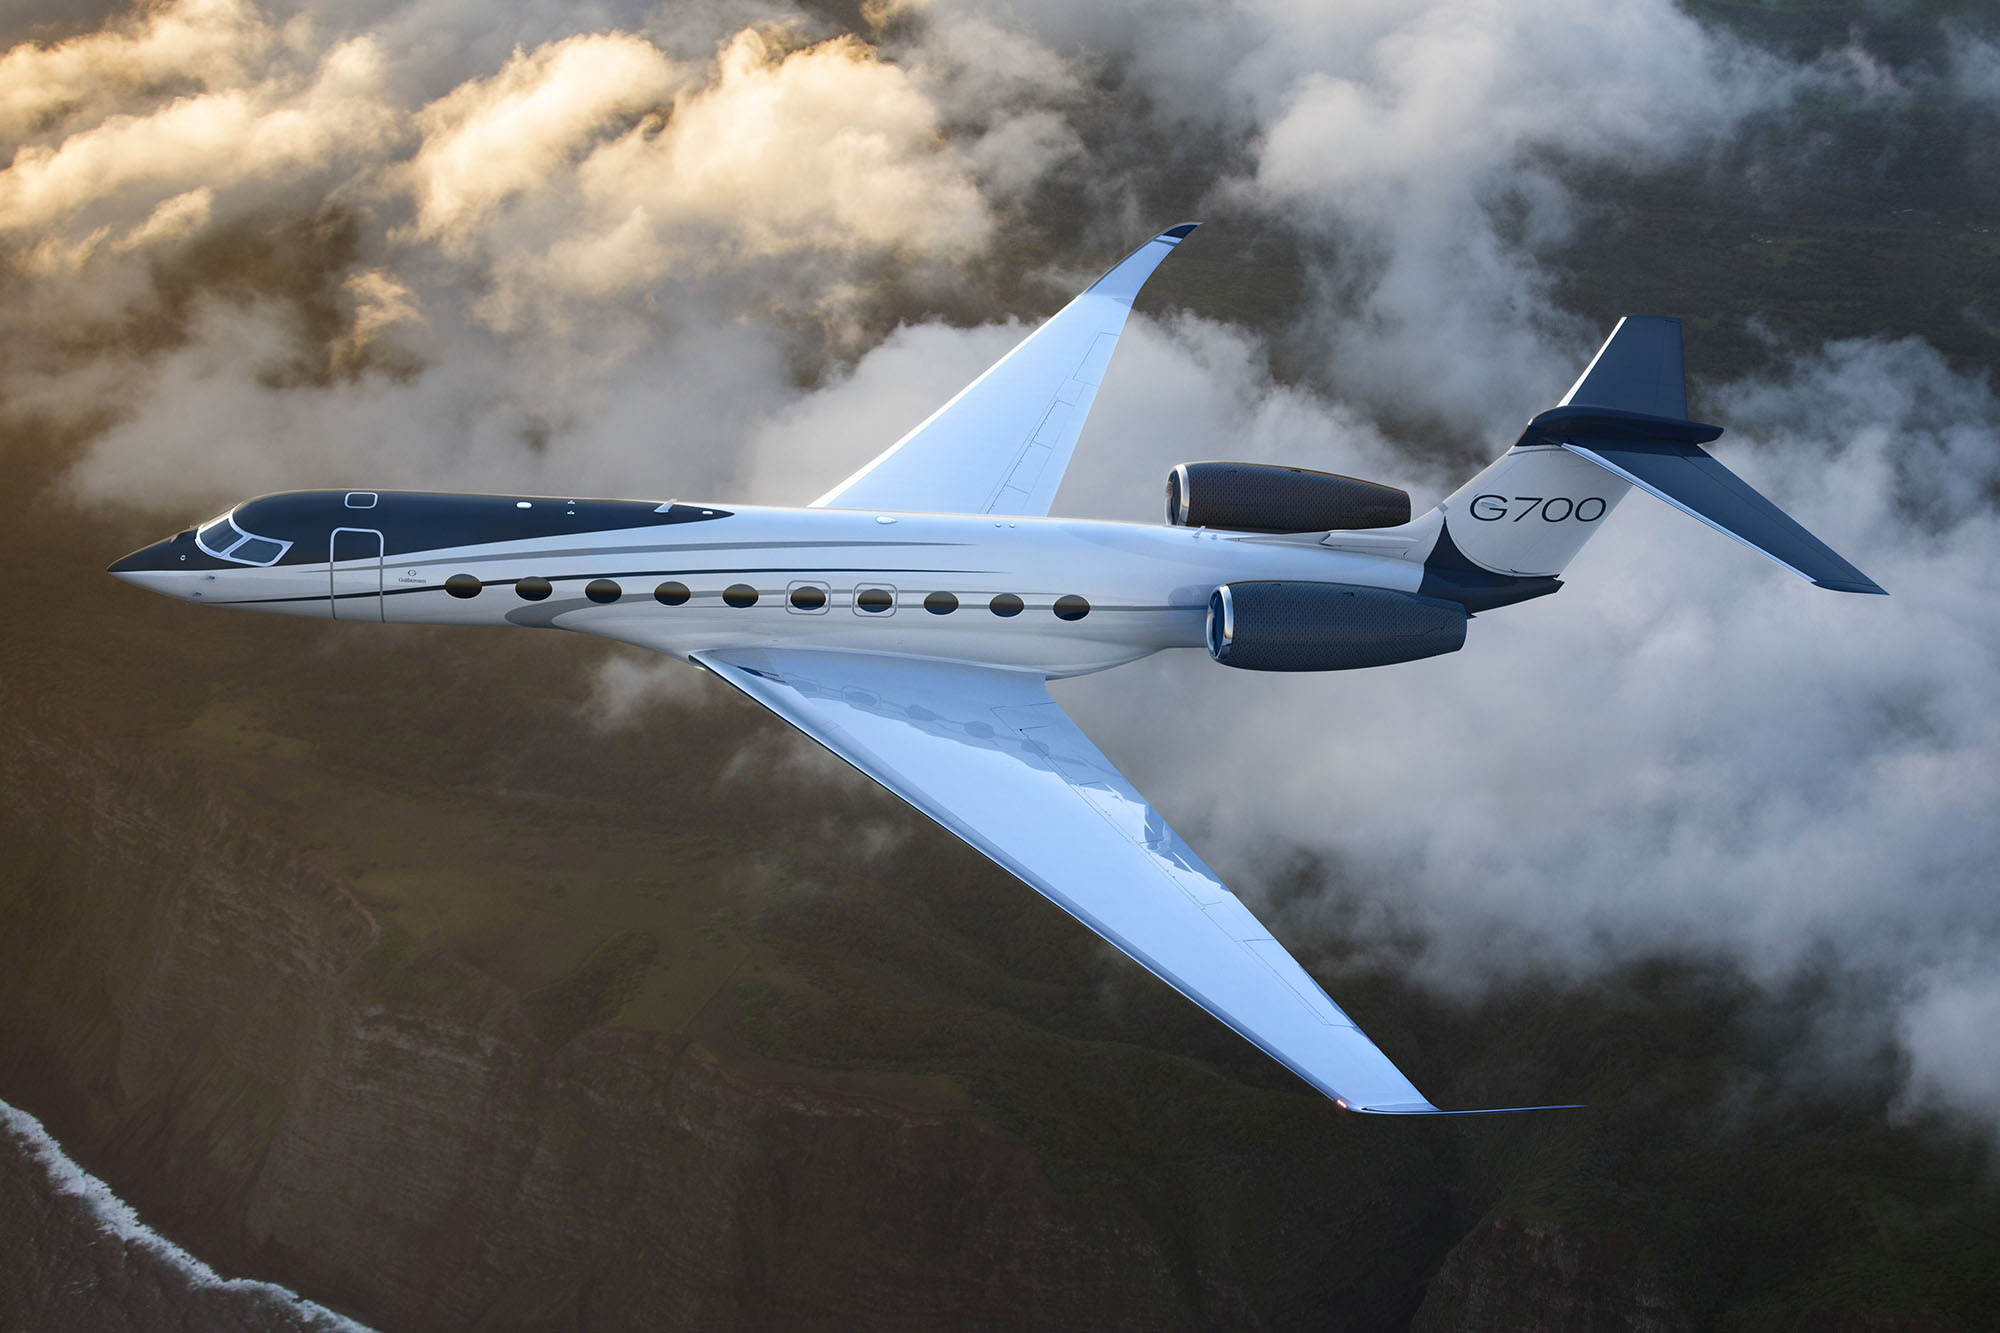 NBAA 2019: Gulfstream Unveils Gulfstream G700 At Hollywood-Caliber Spectacular